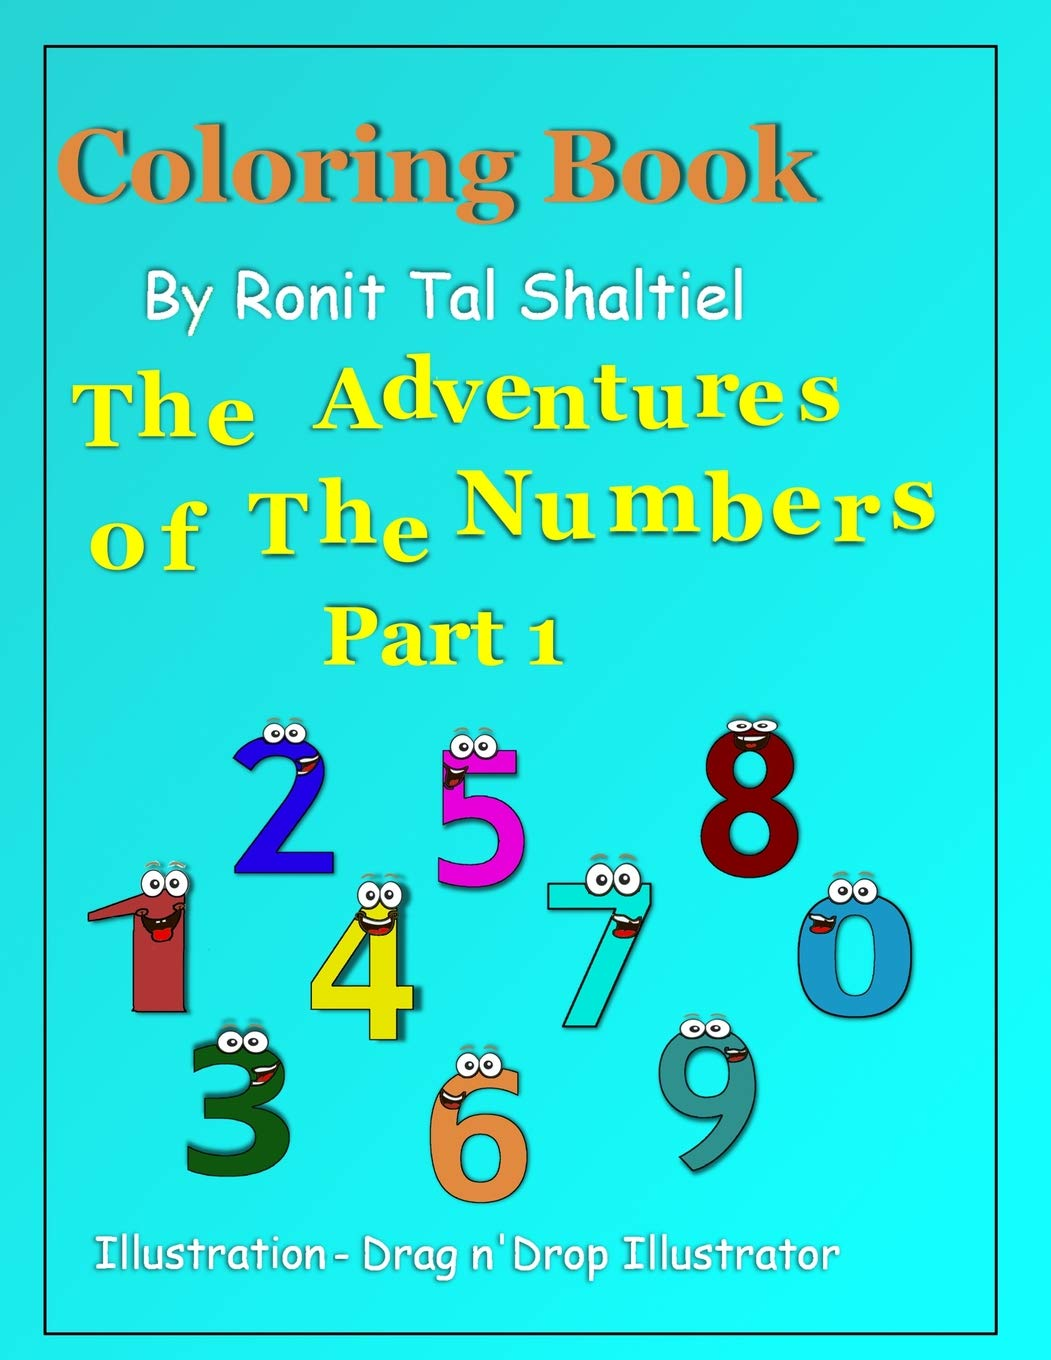 Coloring Book - The adventures of the numbers: Part 1